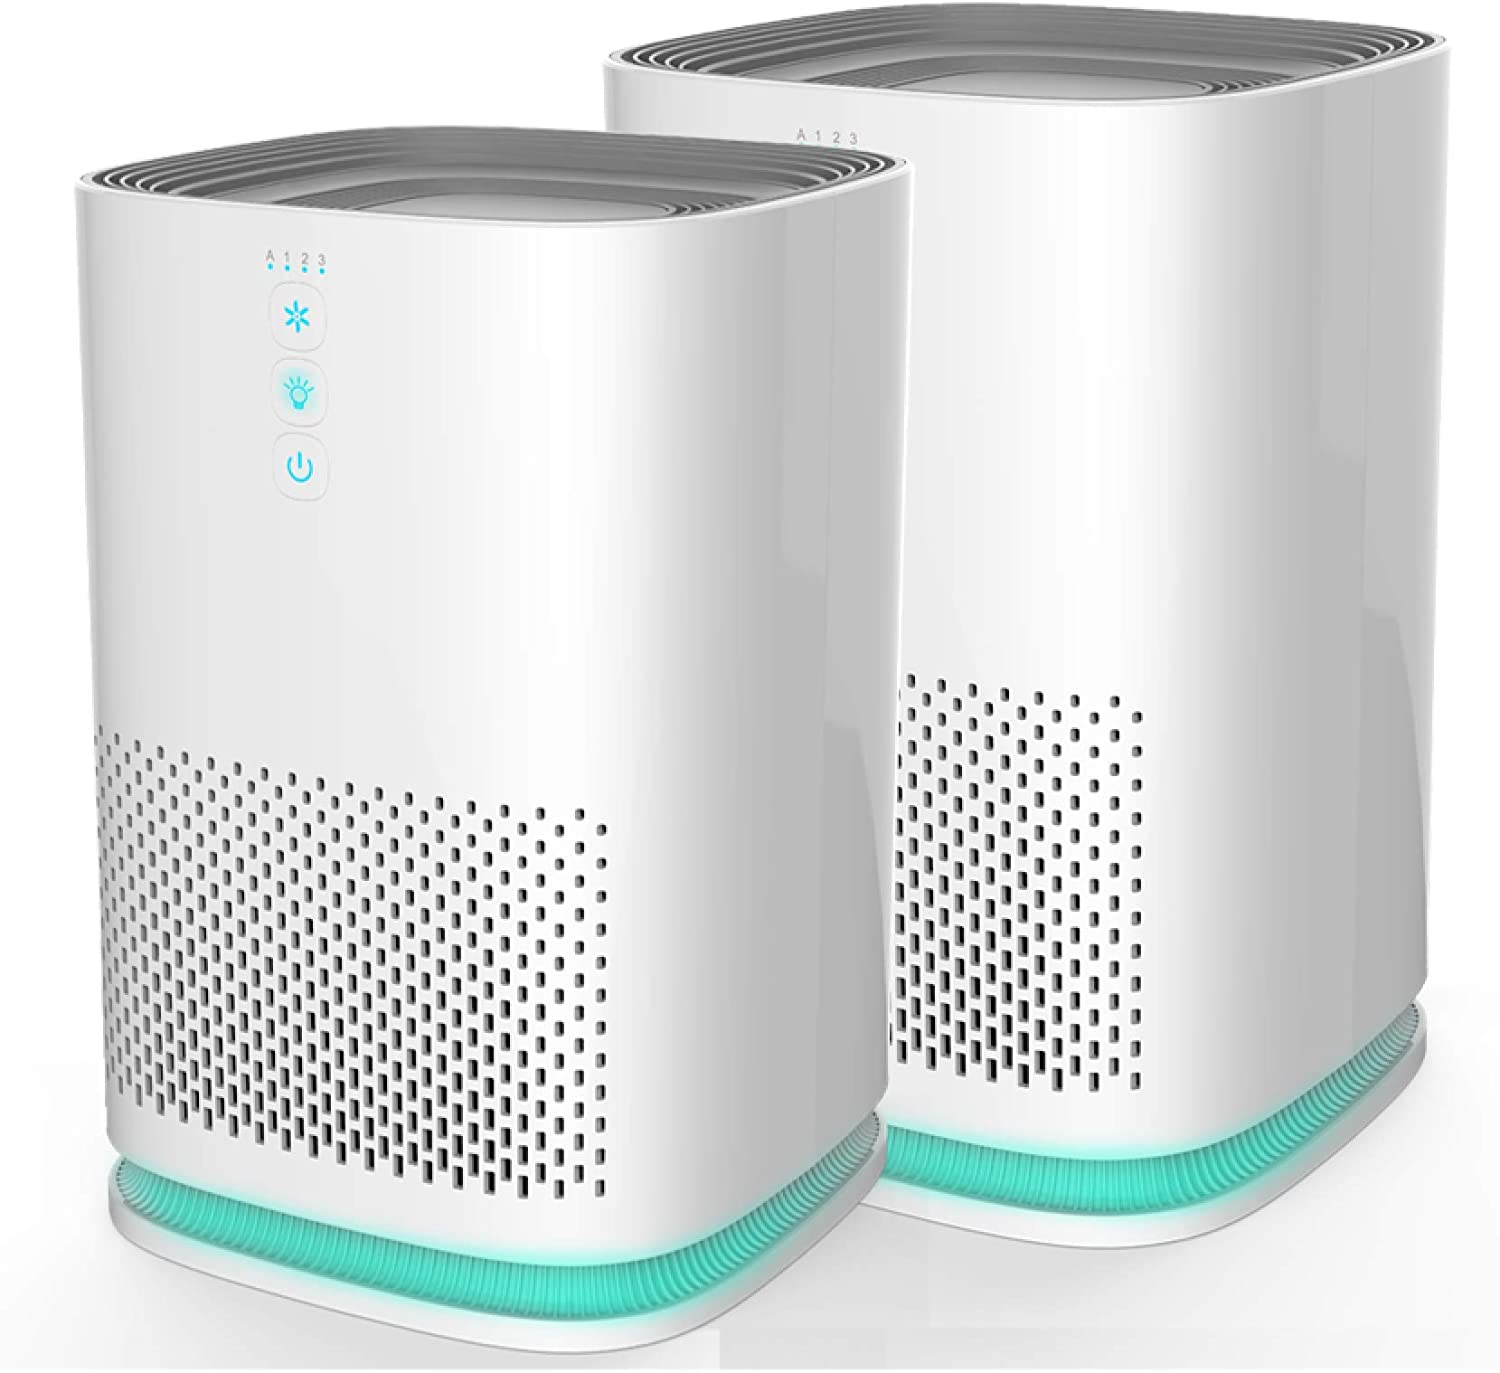 Medify MA-14 Medical Grade Filtration H13 HEPA Air Purifier for 200 Sq. Ft. (99.97%) Allergies, dust, Pollen, Perfect for Office, bedrooms, dorms and Nurseries - 2-Pack